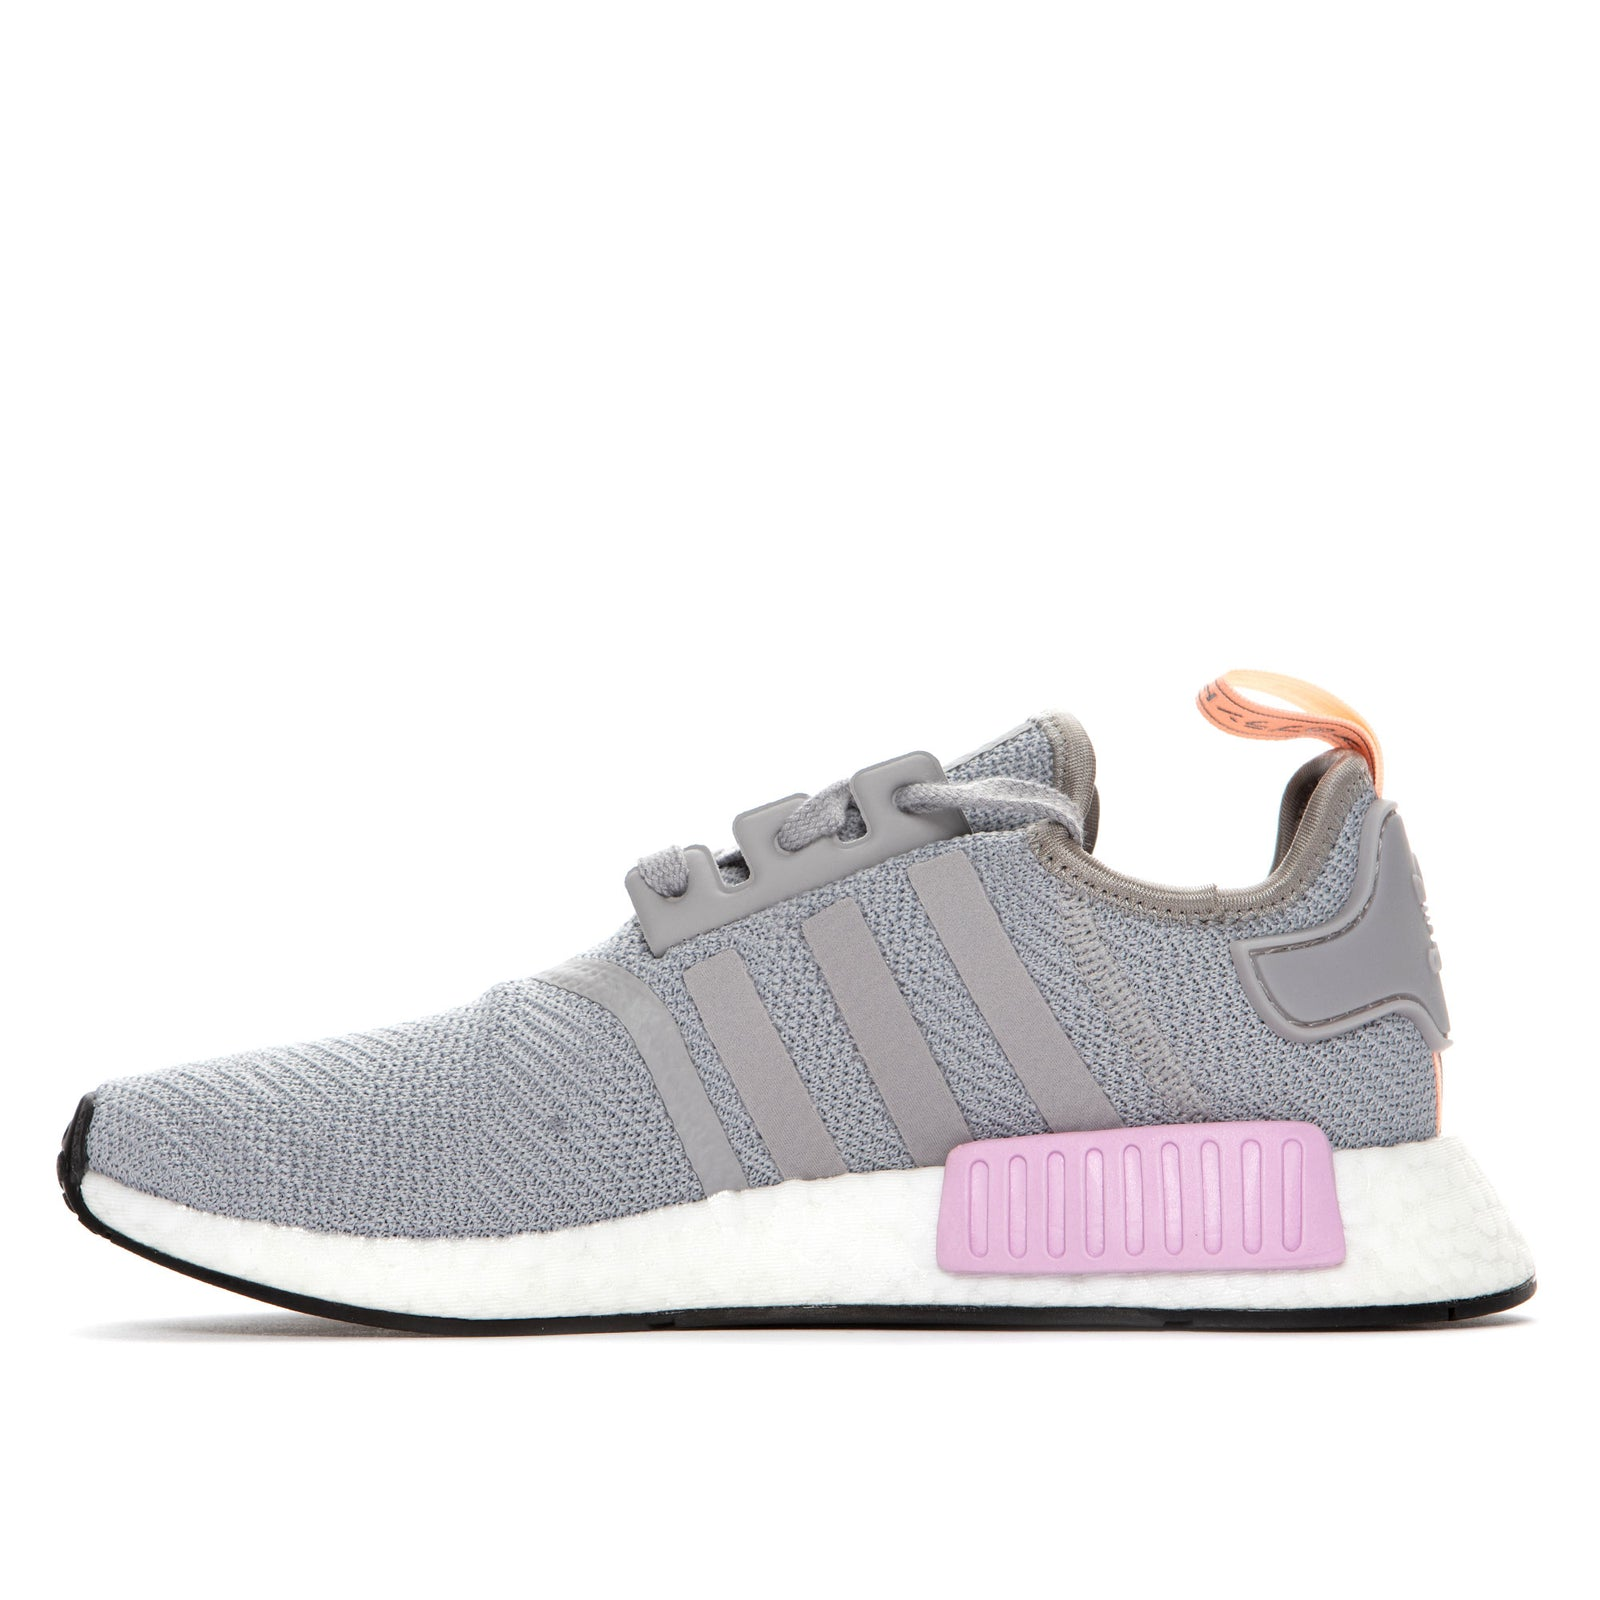 Adidas Women S Nmd R1 Shoe